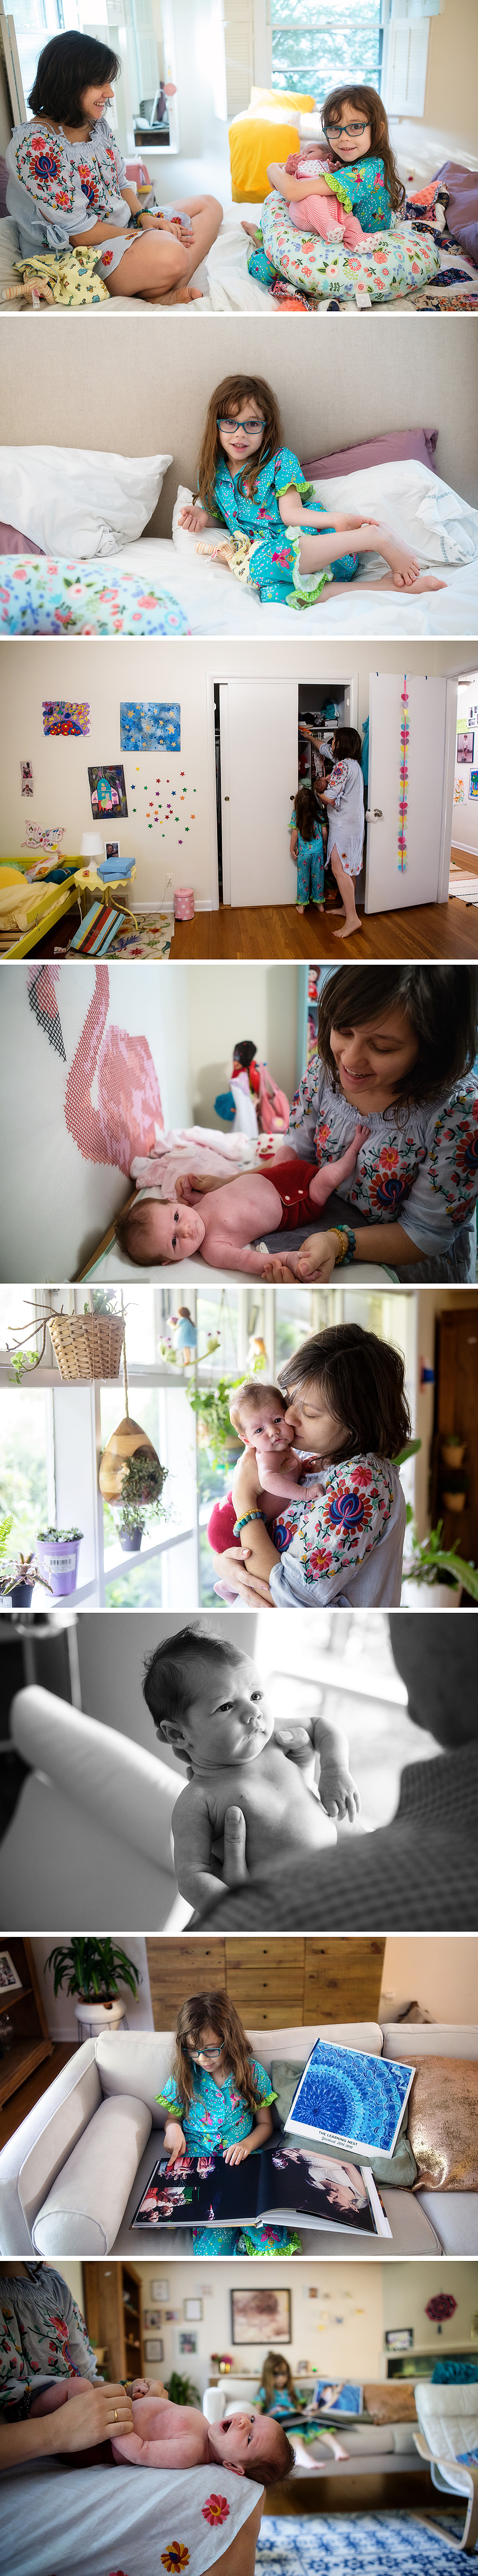 nj and nyc newborn photography